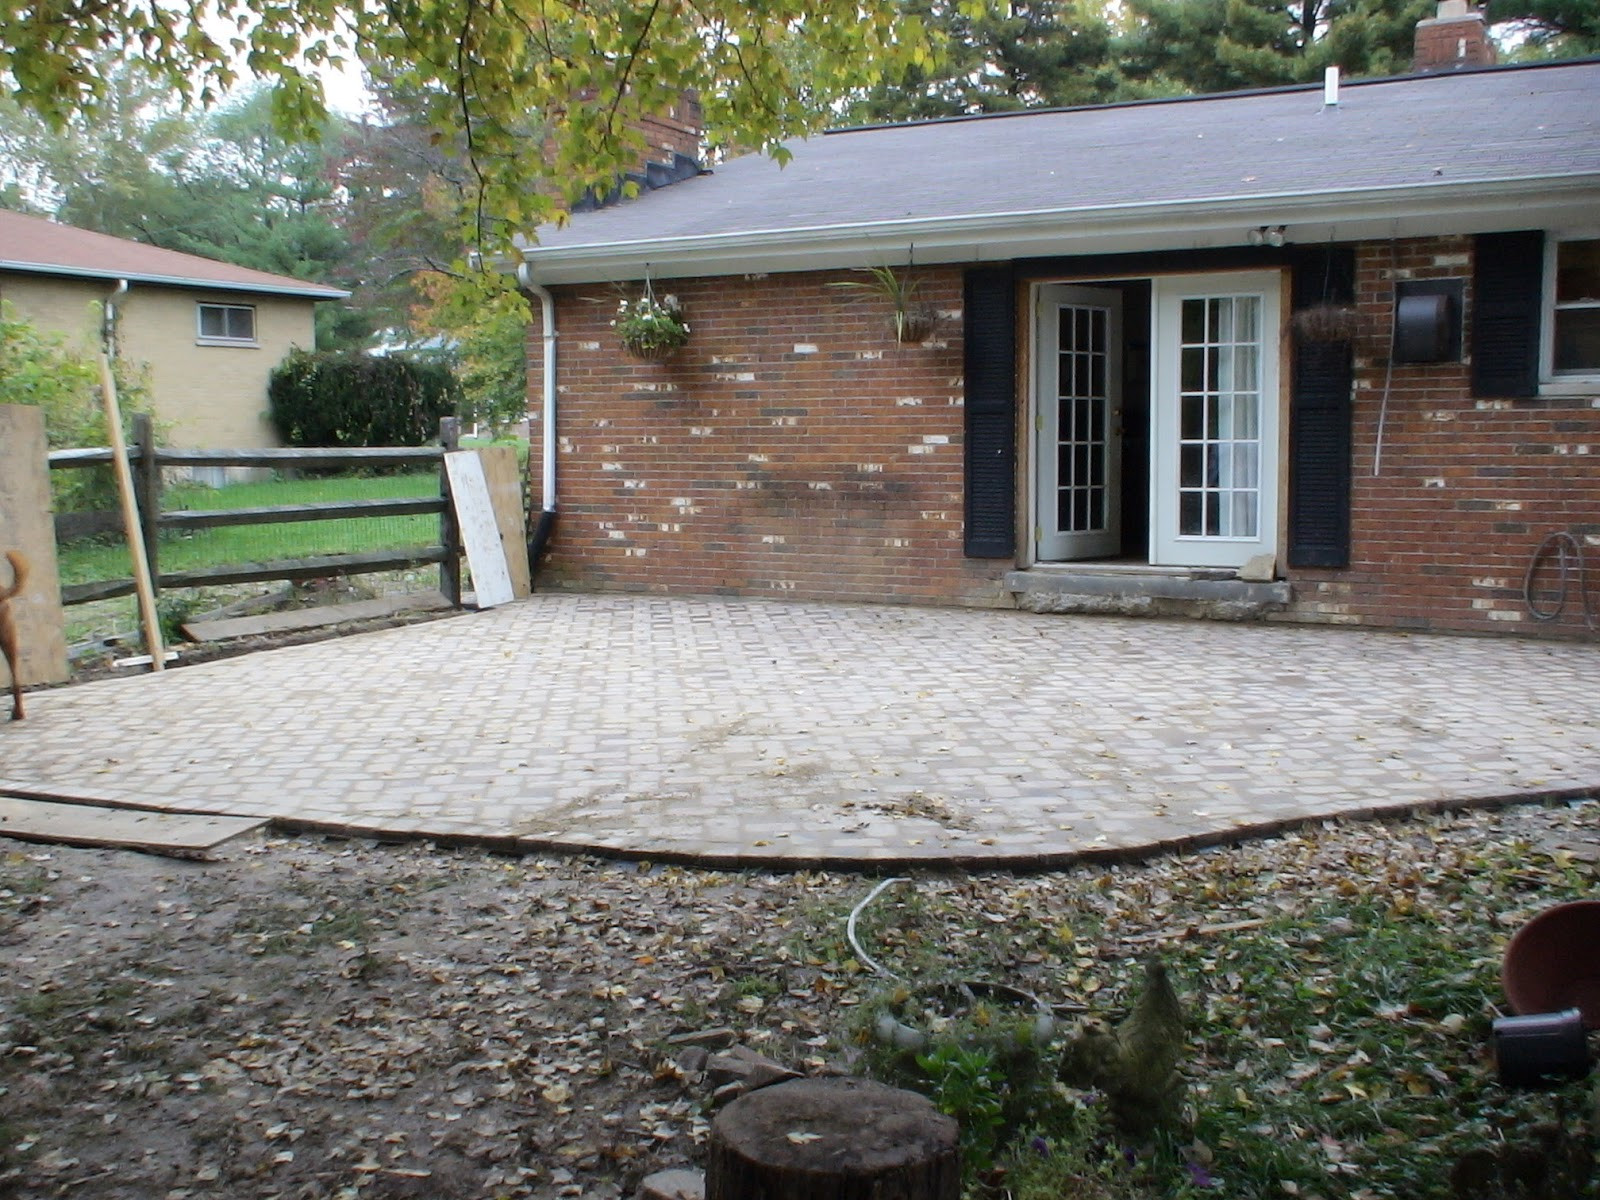 Best ideas about DIY Brick Patio . Save or Pin Chez V Tales from the Projects DIY Paver Patio & Pond Now.